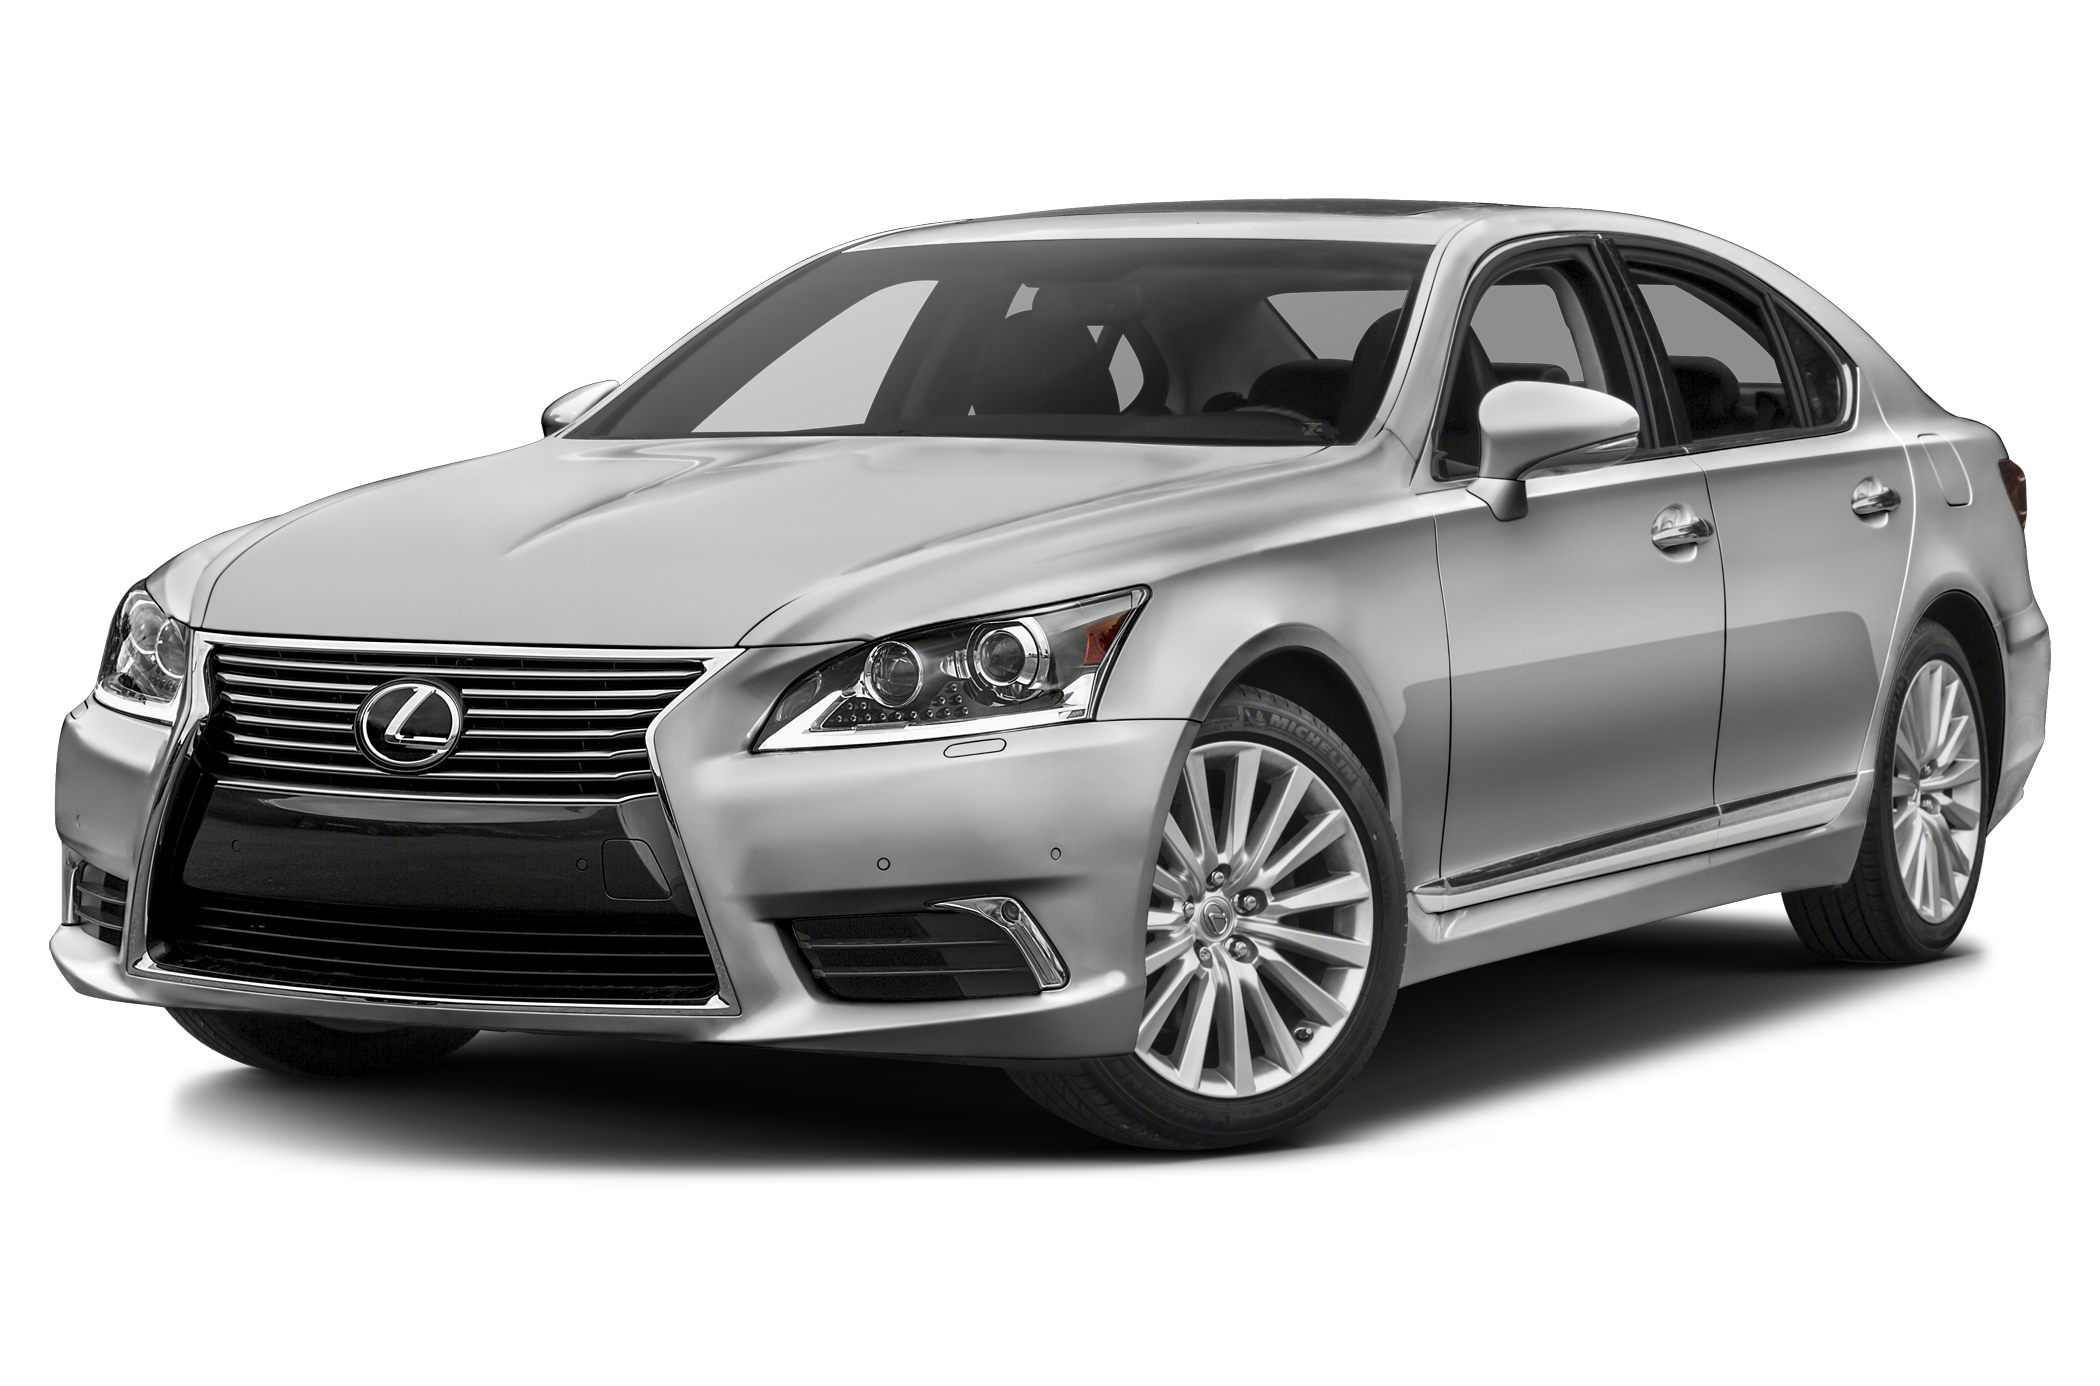 2013 Lexus LS 460 L 4dr All wheel Drive LWB Sedan Pricing and Options